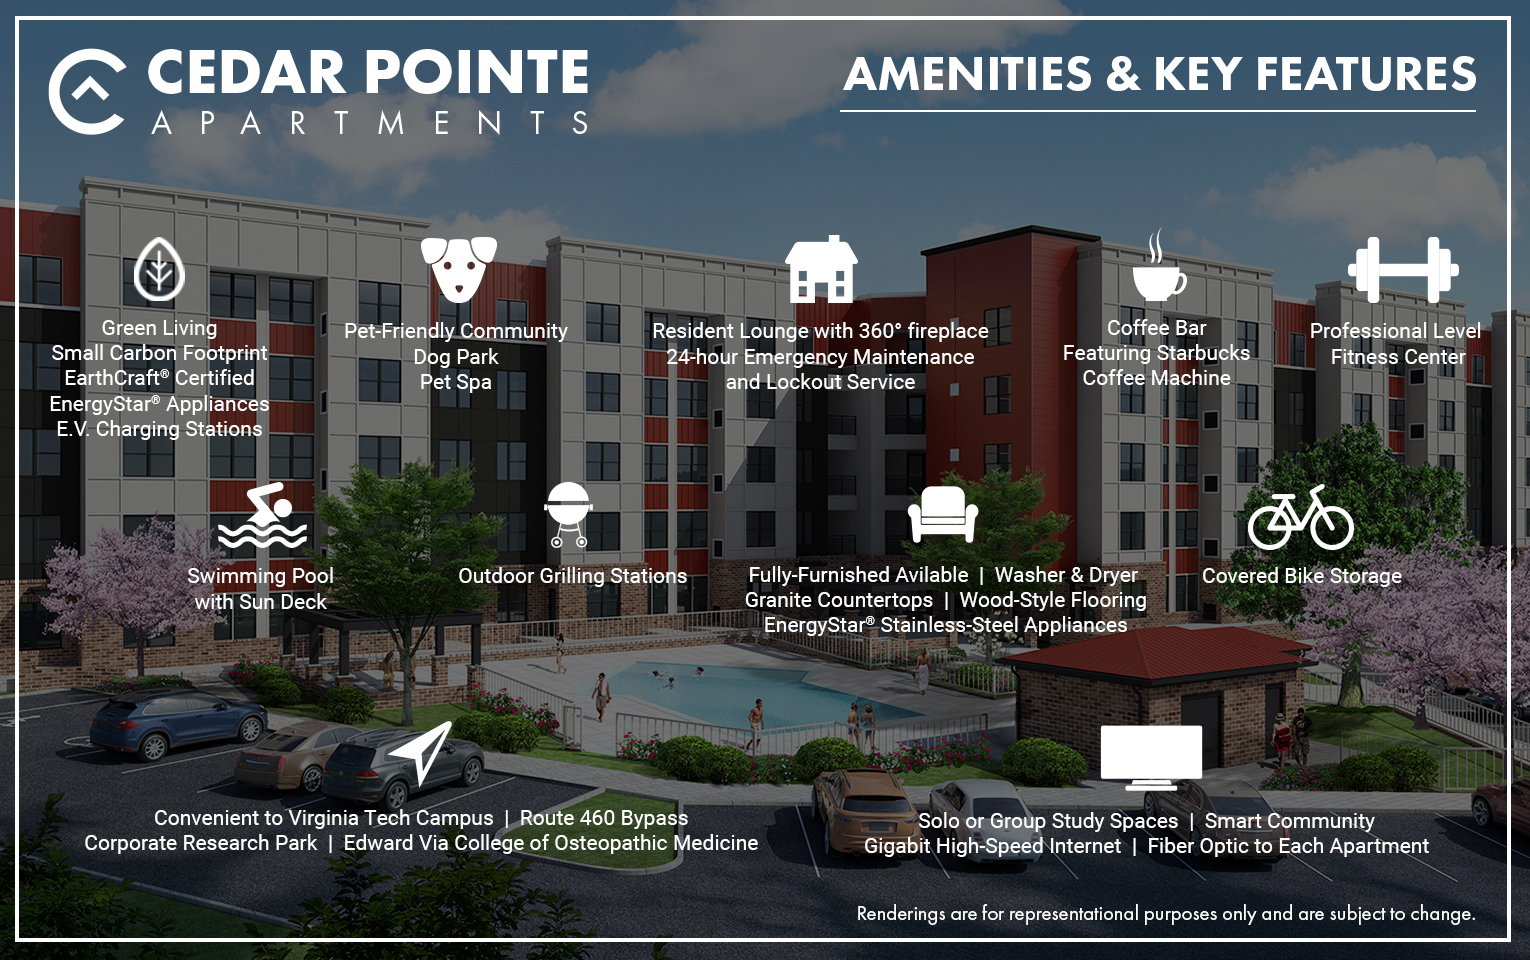 Cedar Pointe Amenity Icon Graphic